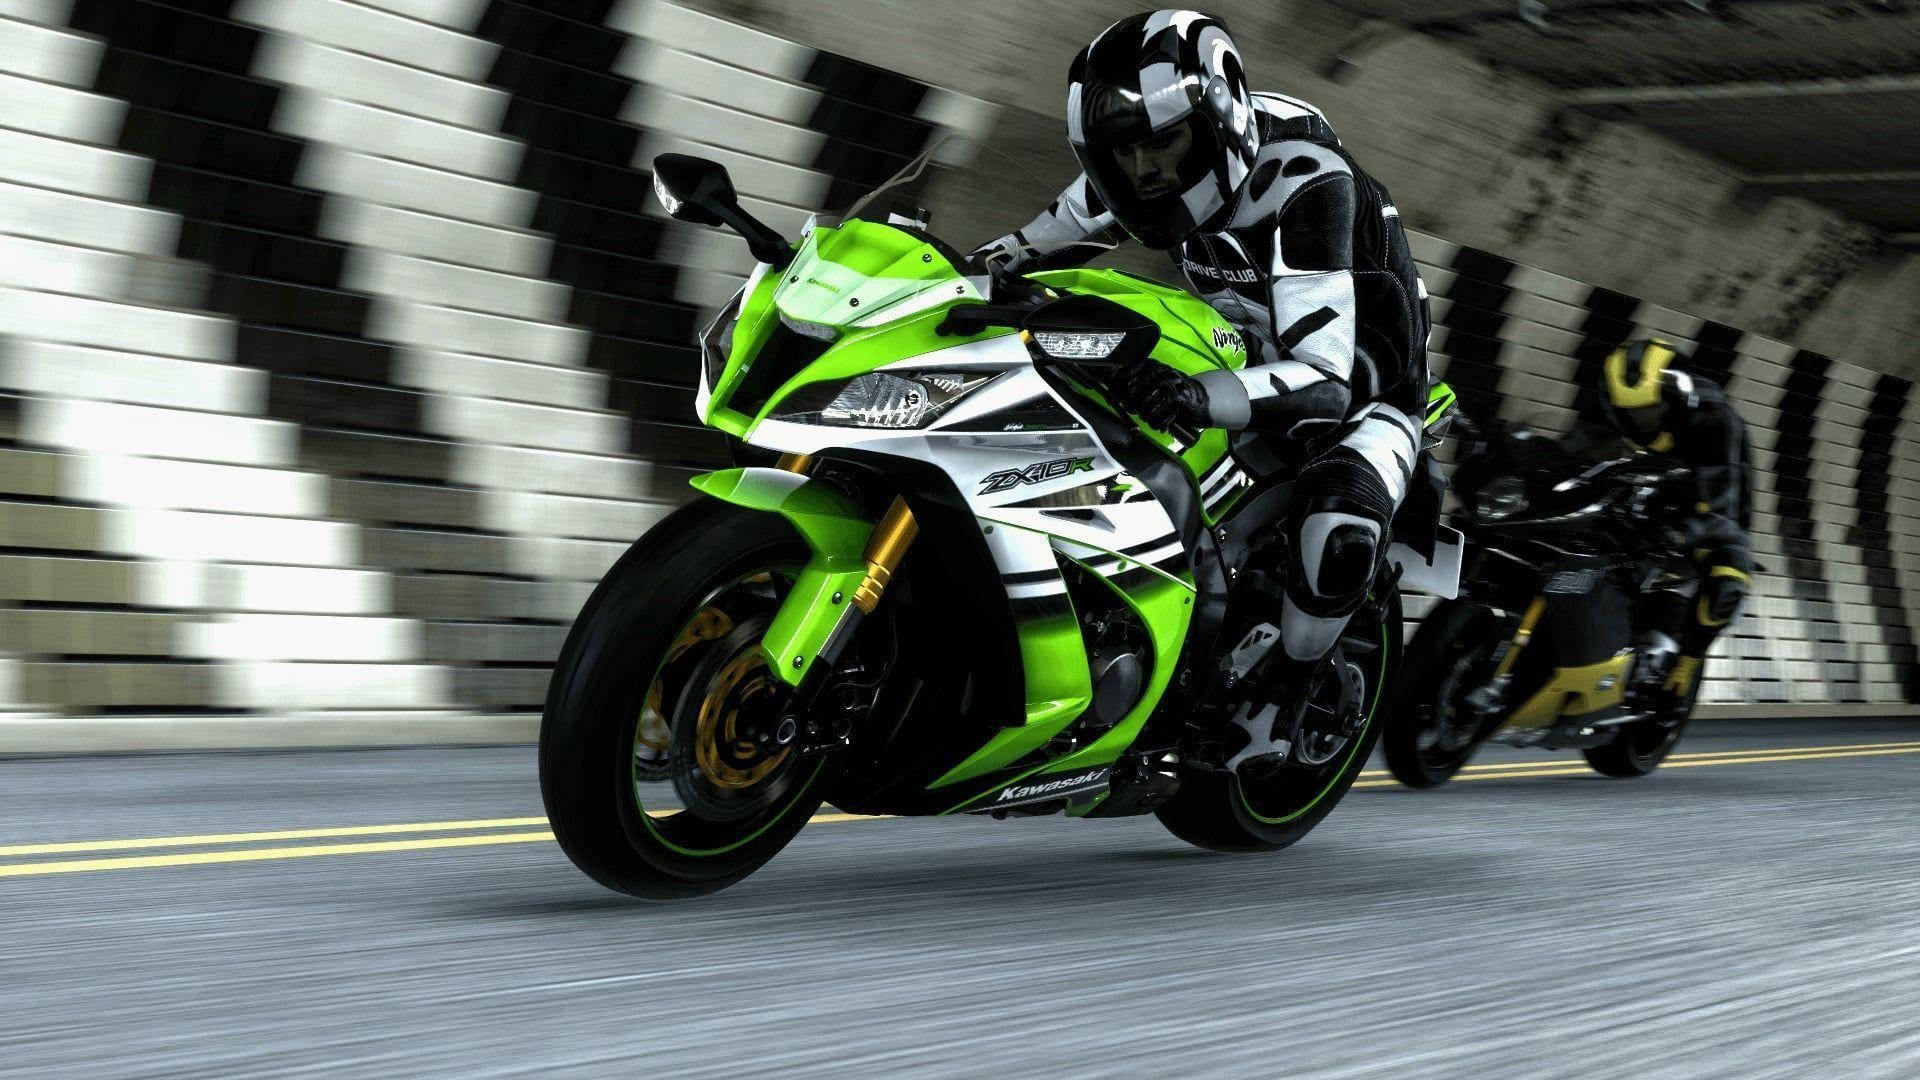 2018 Kawasaki Ninja 250R Wallpaper 1